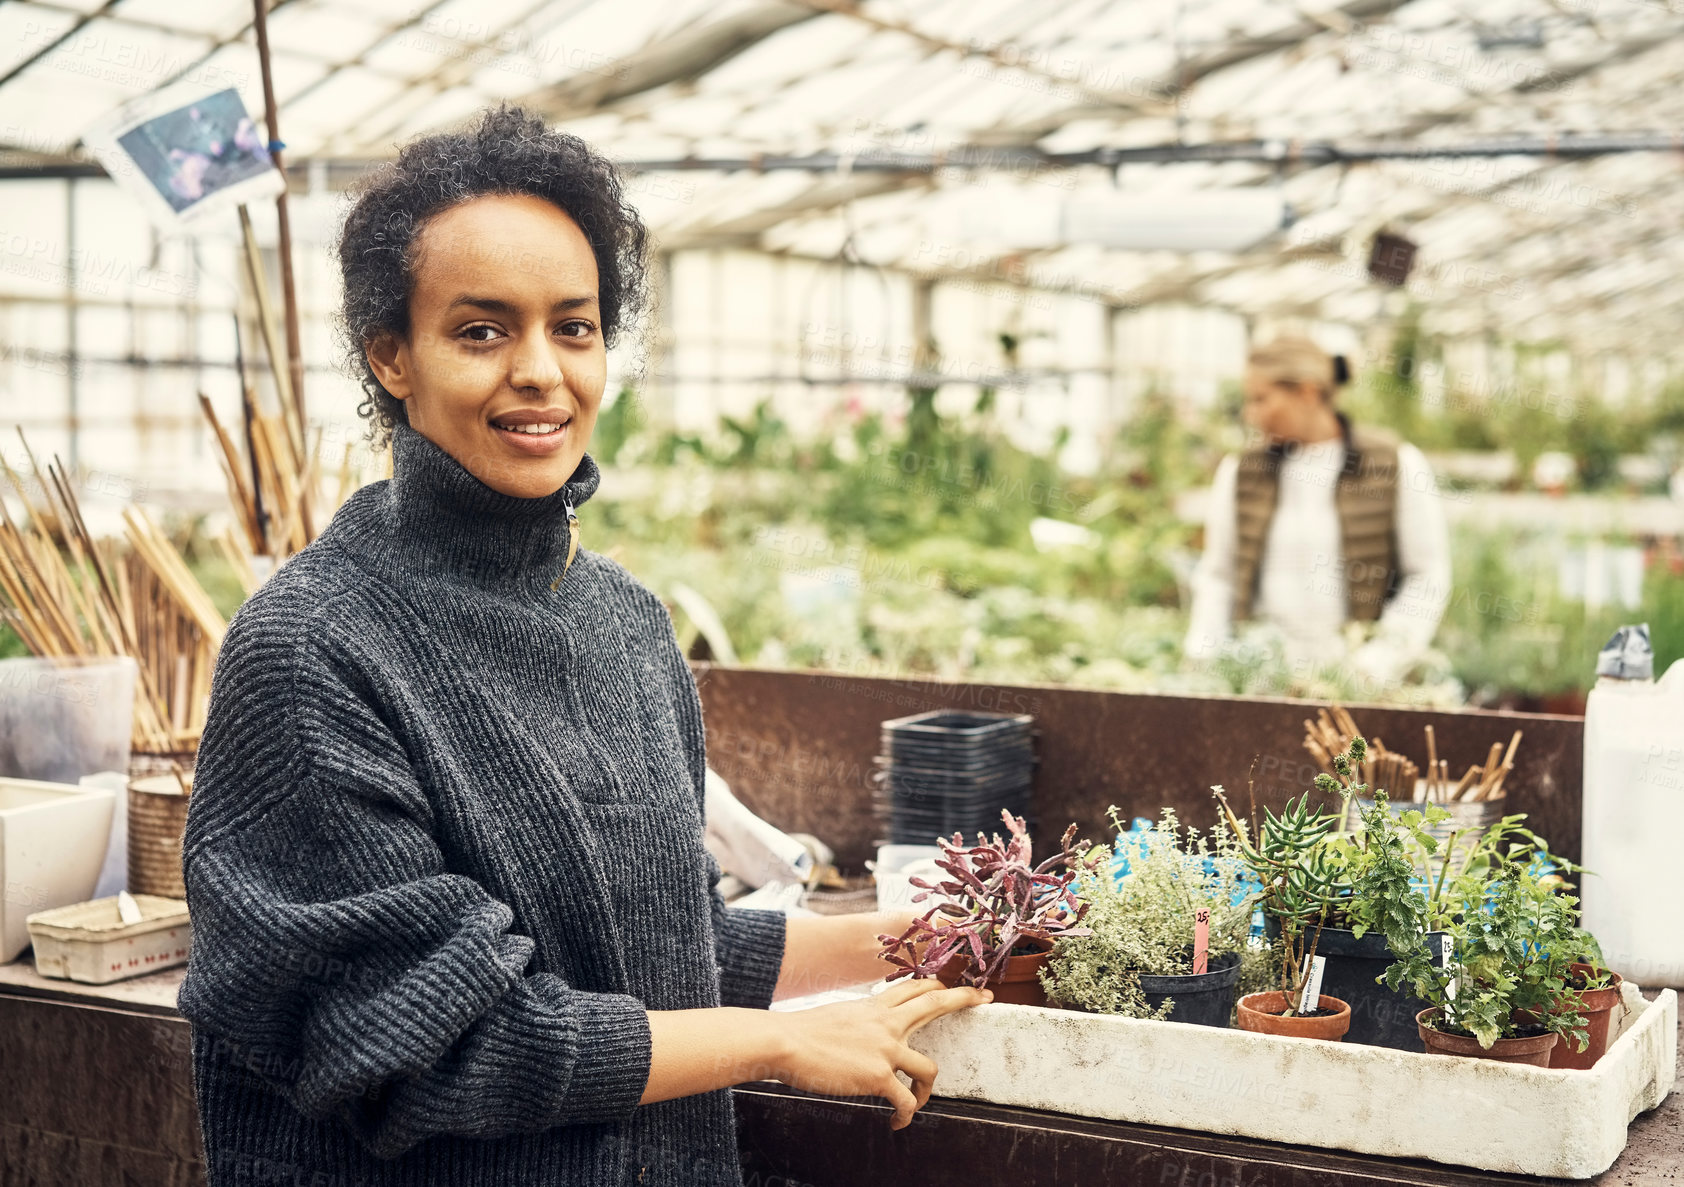 Buy stock photo Portrait of a young woman working in a greenhouse